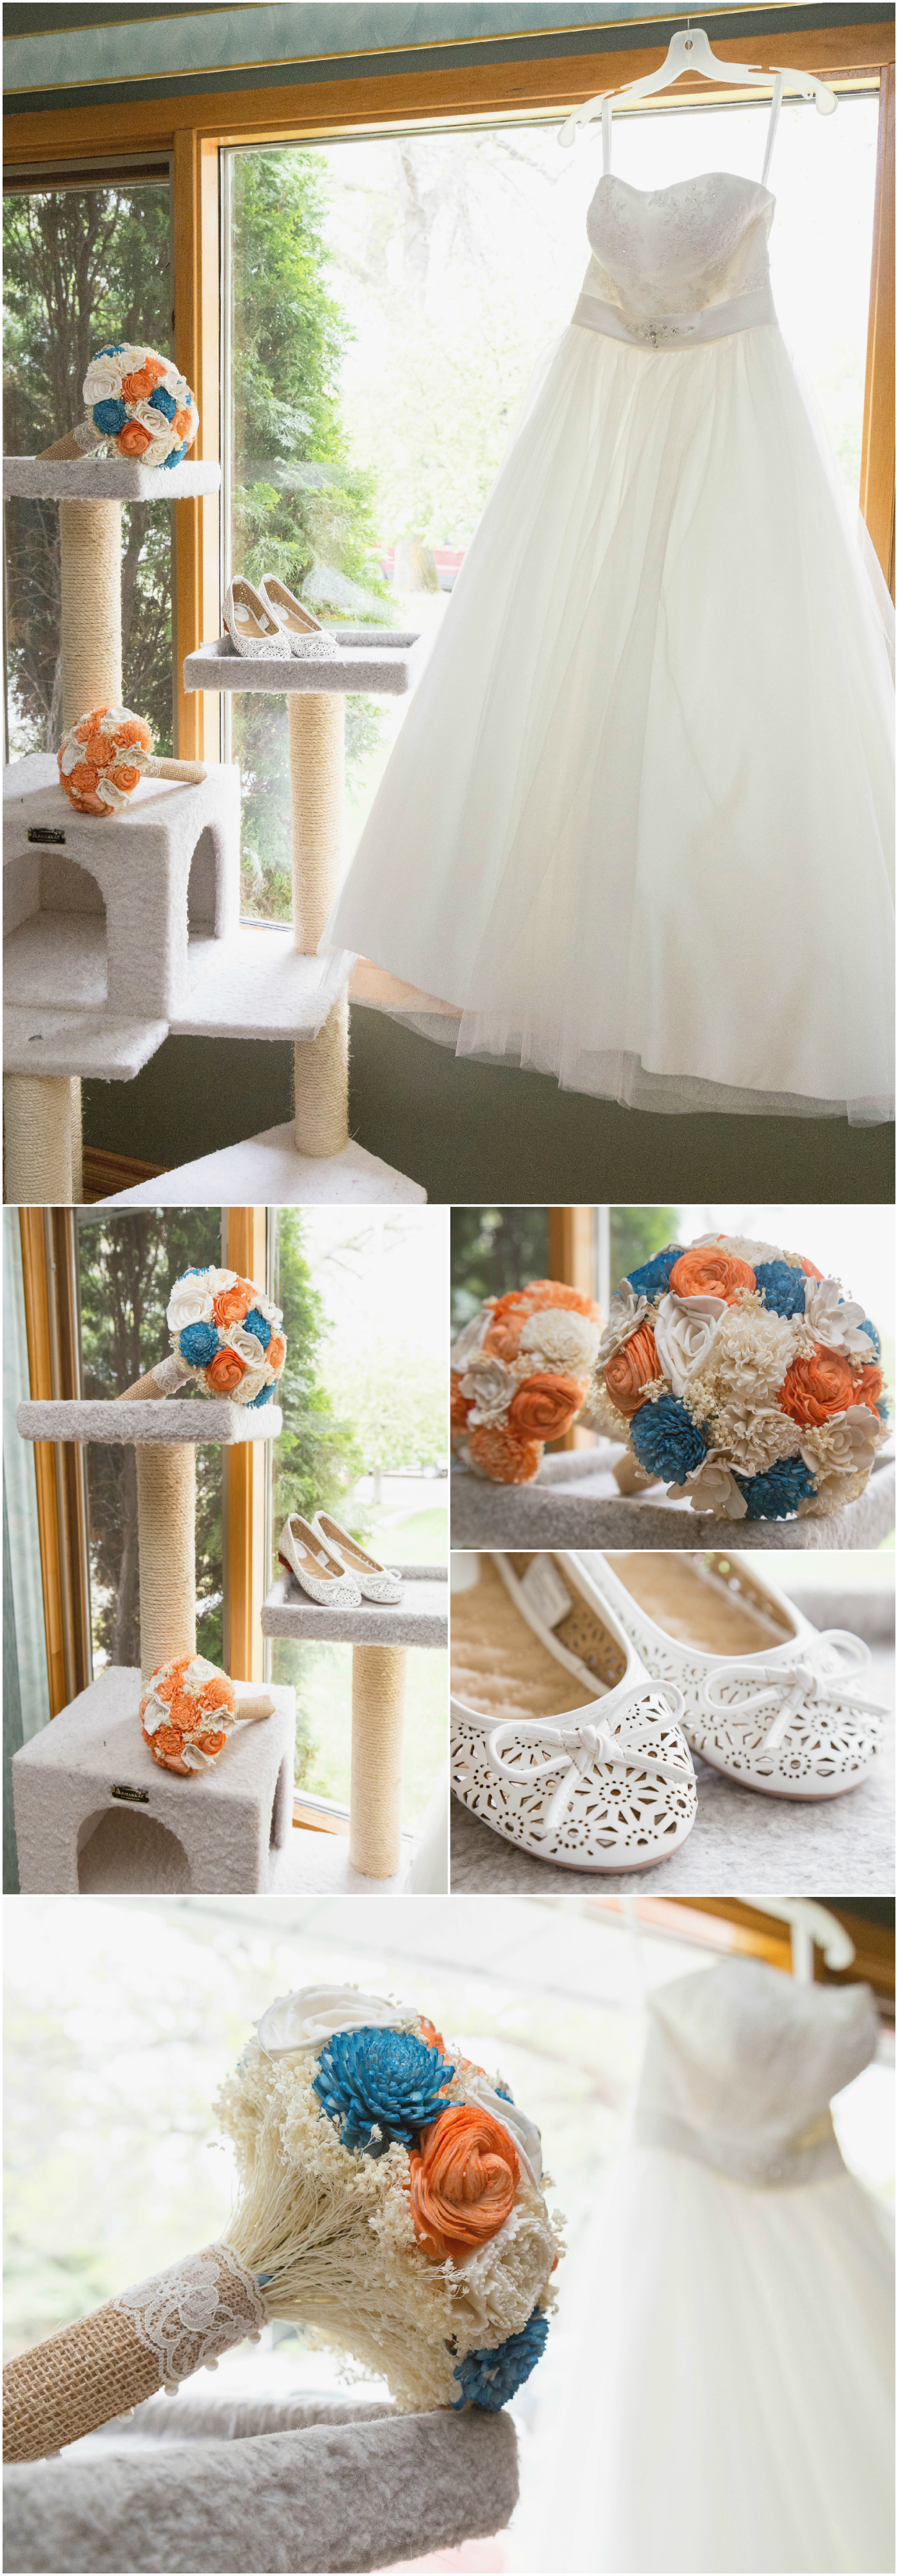 Jayda + Cole's Video Game Wedding | Woods Photography. Photos of the bride's wedding dress, white slip on shoes, as well as white, orange and teal wedding bouquet made out of wood with scratching post for cat lovers. Taken in Medicine Hat, AB (CANADA). #wood #catlovers #CuriousFloral